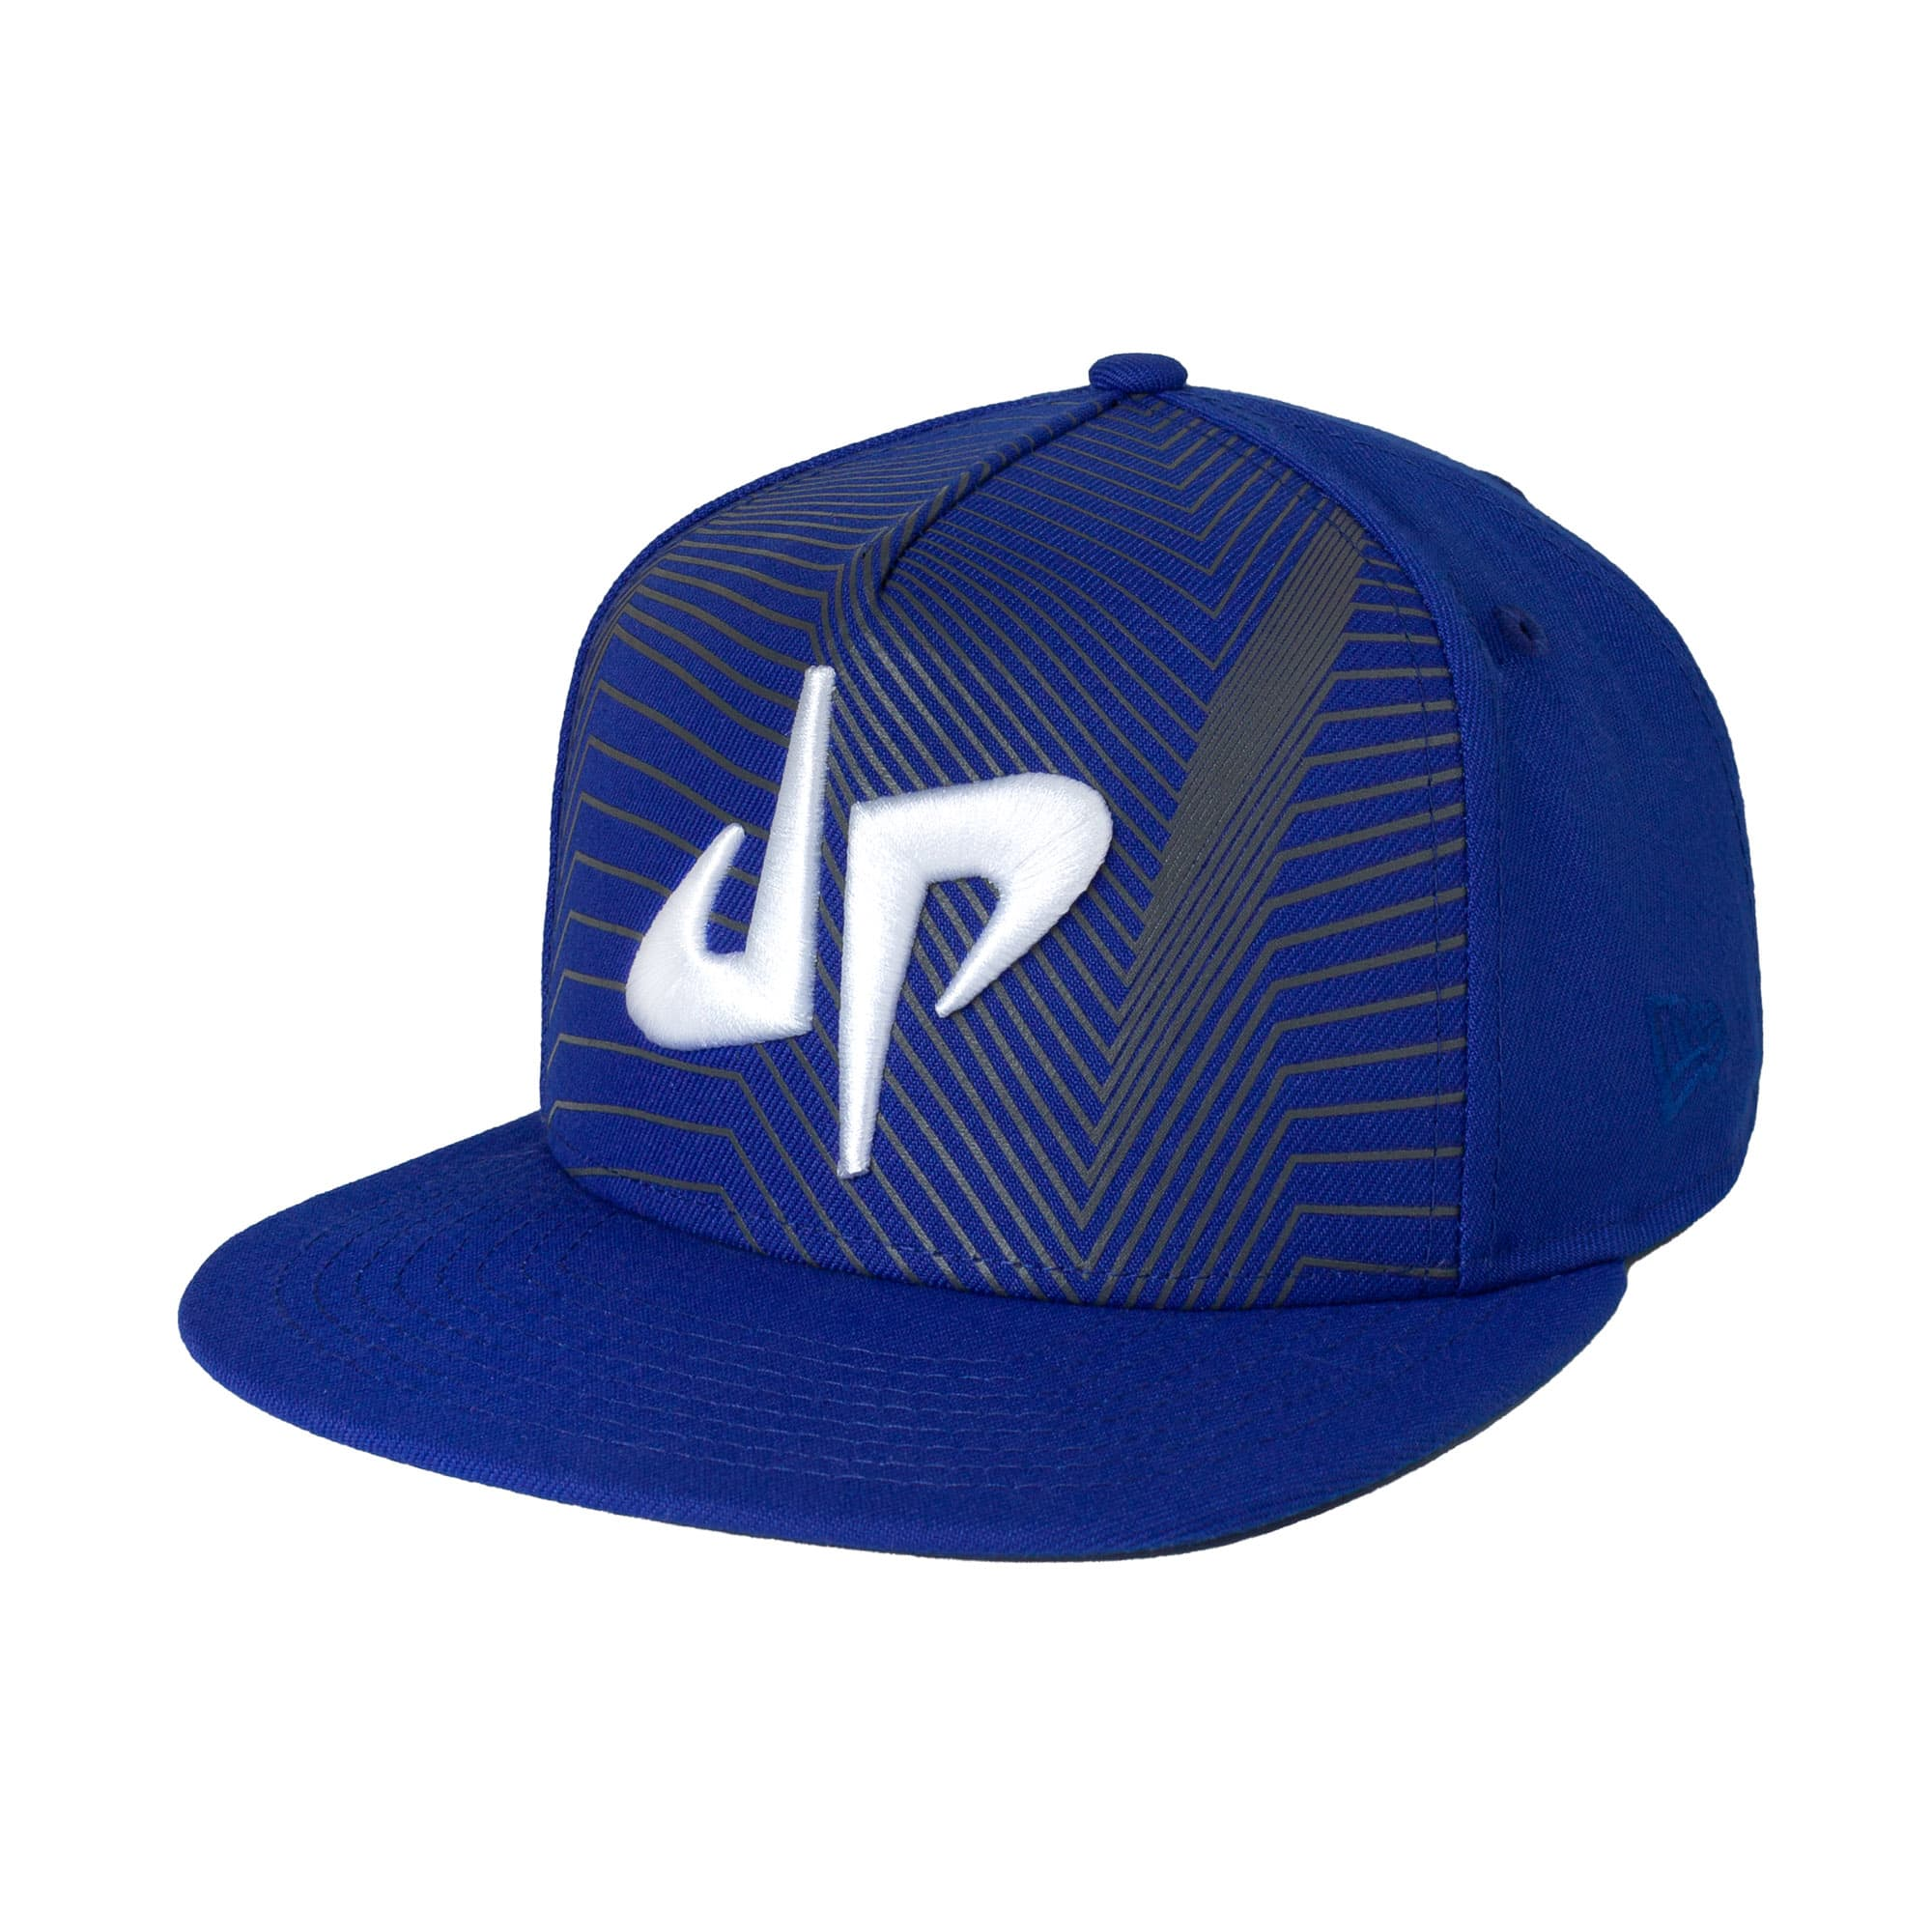 DP x New Era 'Sonic Strike' 9Fifty Snapback // Blue